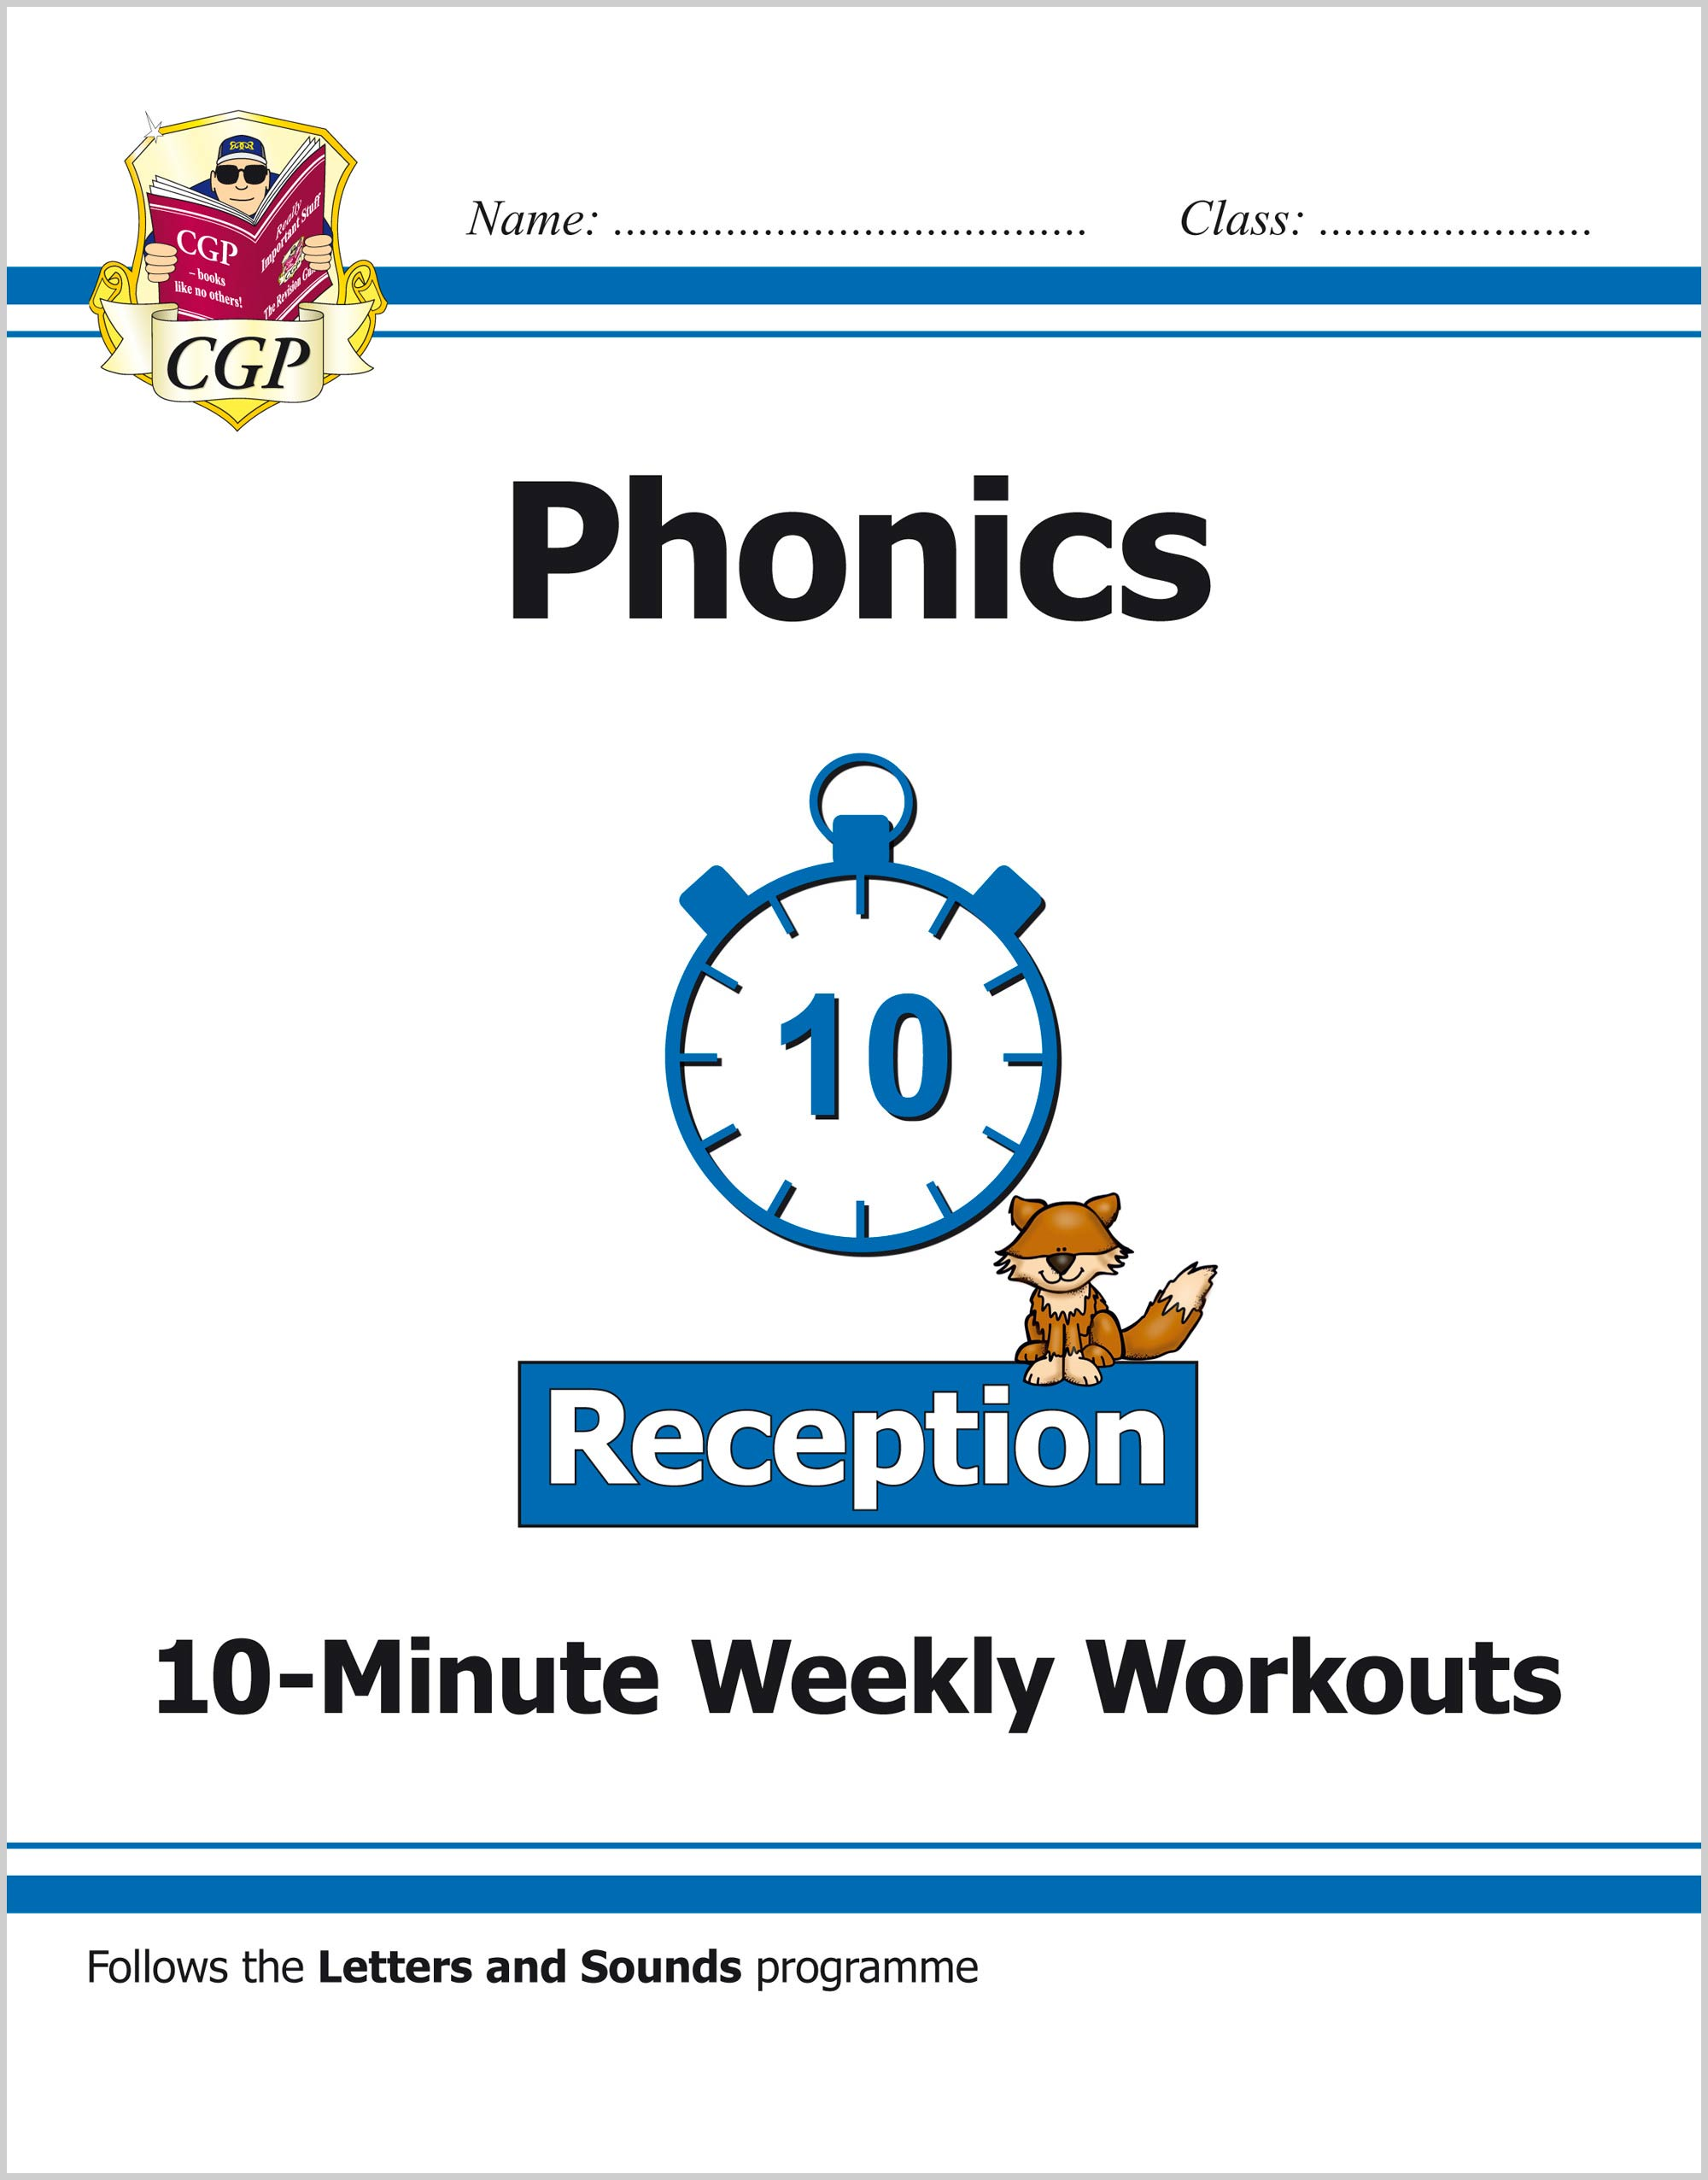 EROXW11 - New English 10-Minute Weekly Workouts: Phonics - Reception